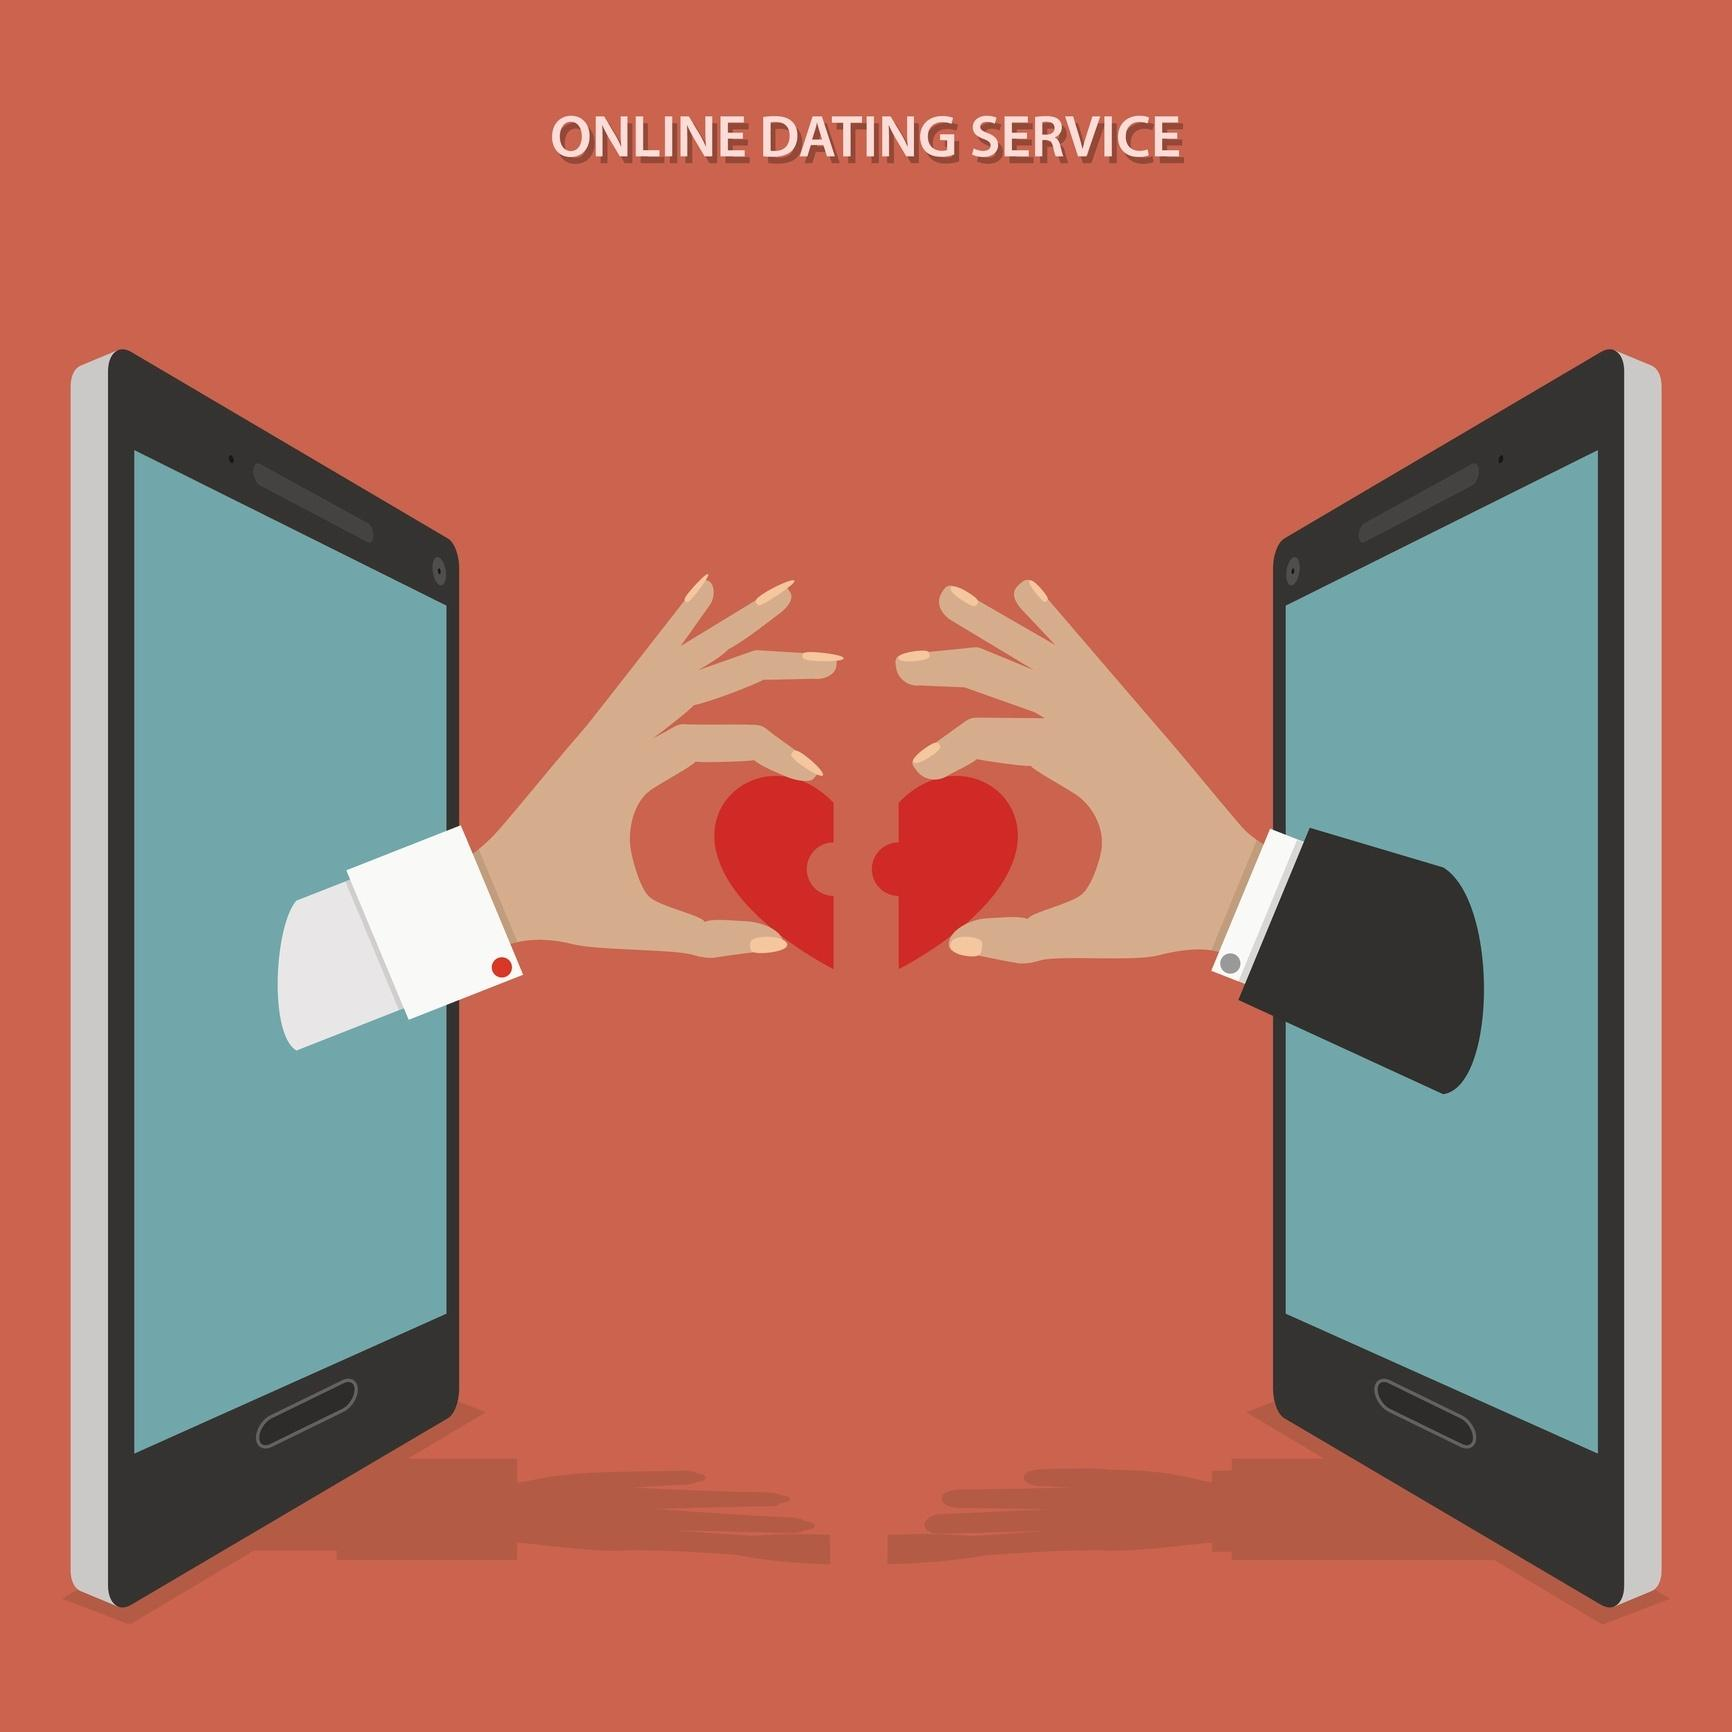 Safety clearance for online dating